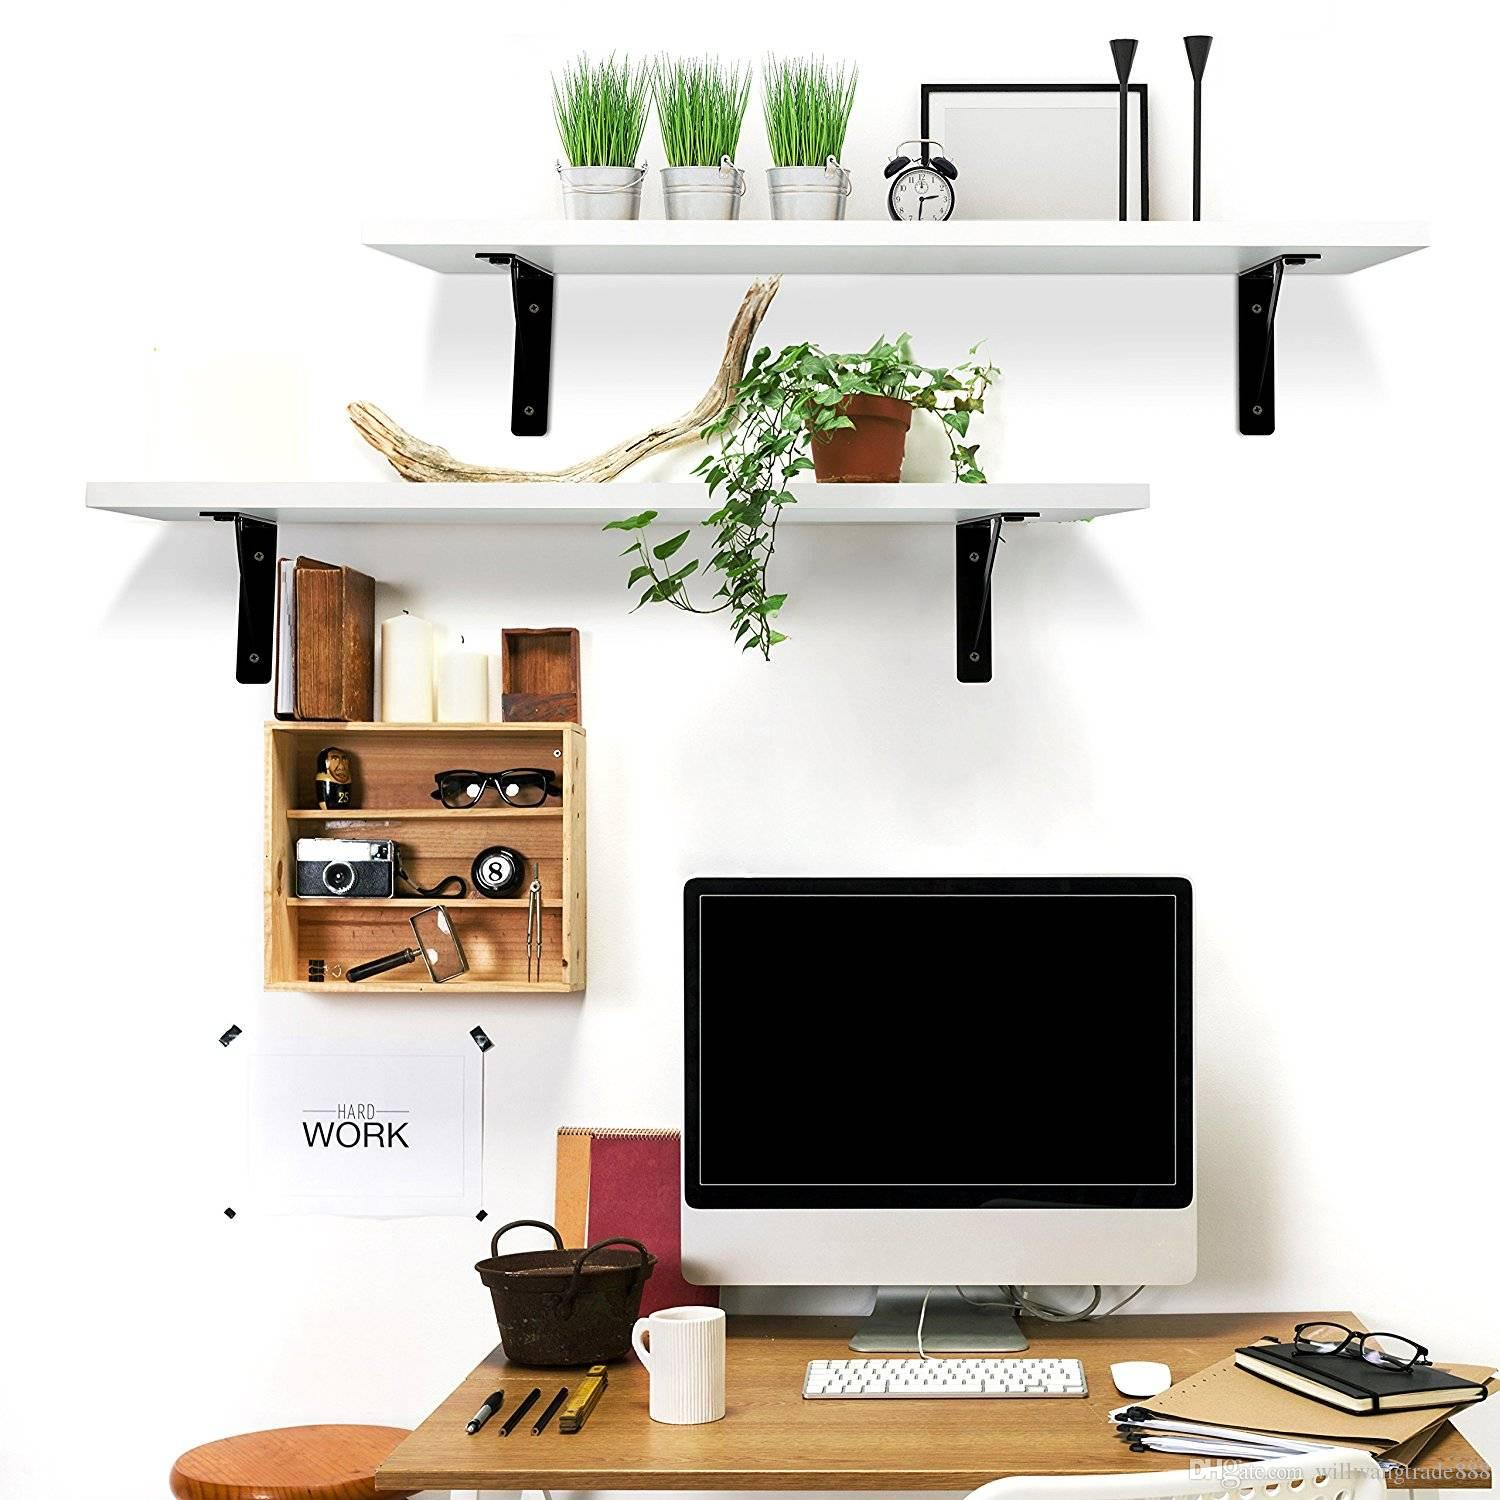 2 Display Ledge Shelf Floating Shelves Wall Mounted Bracket For